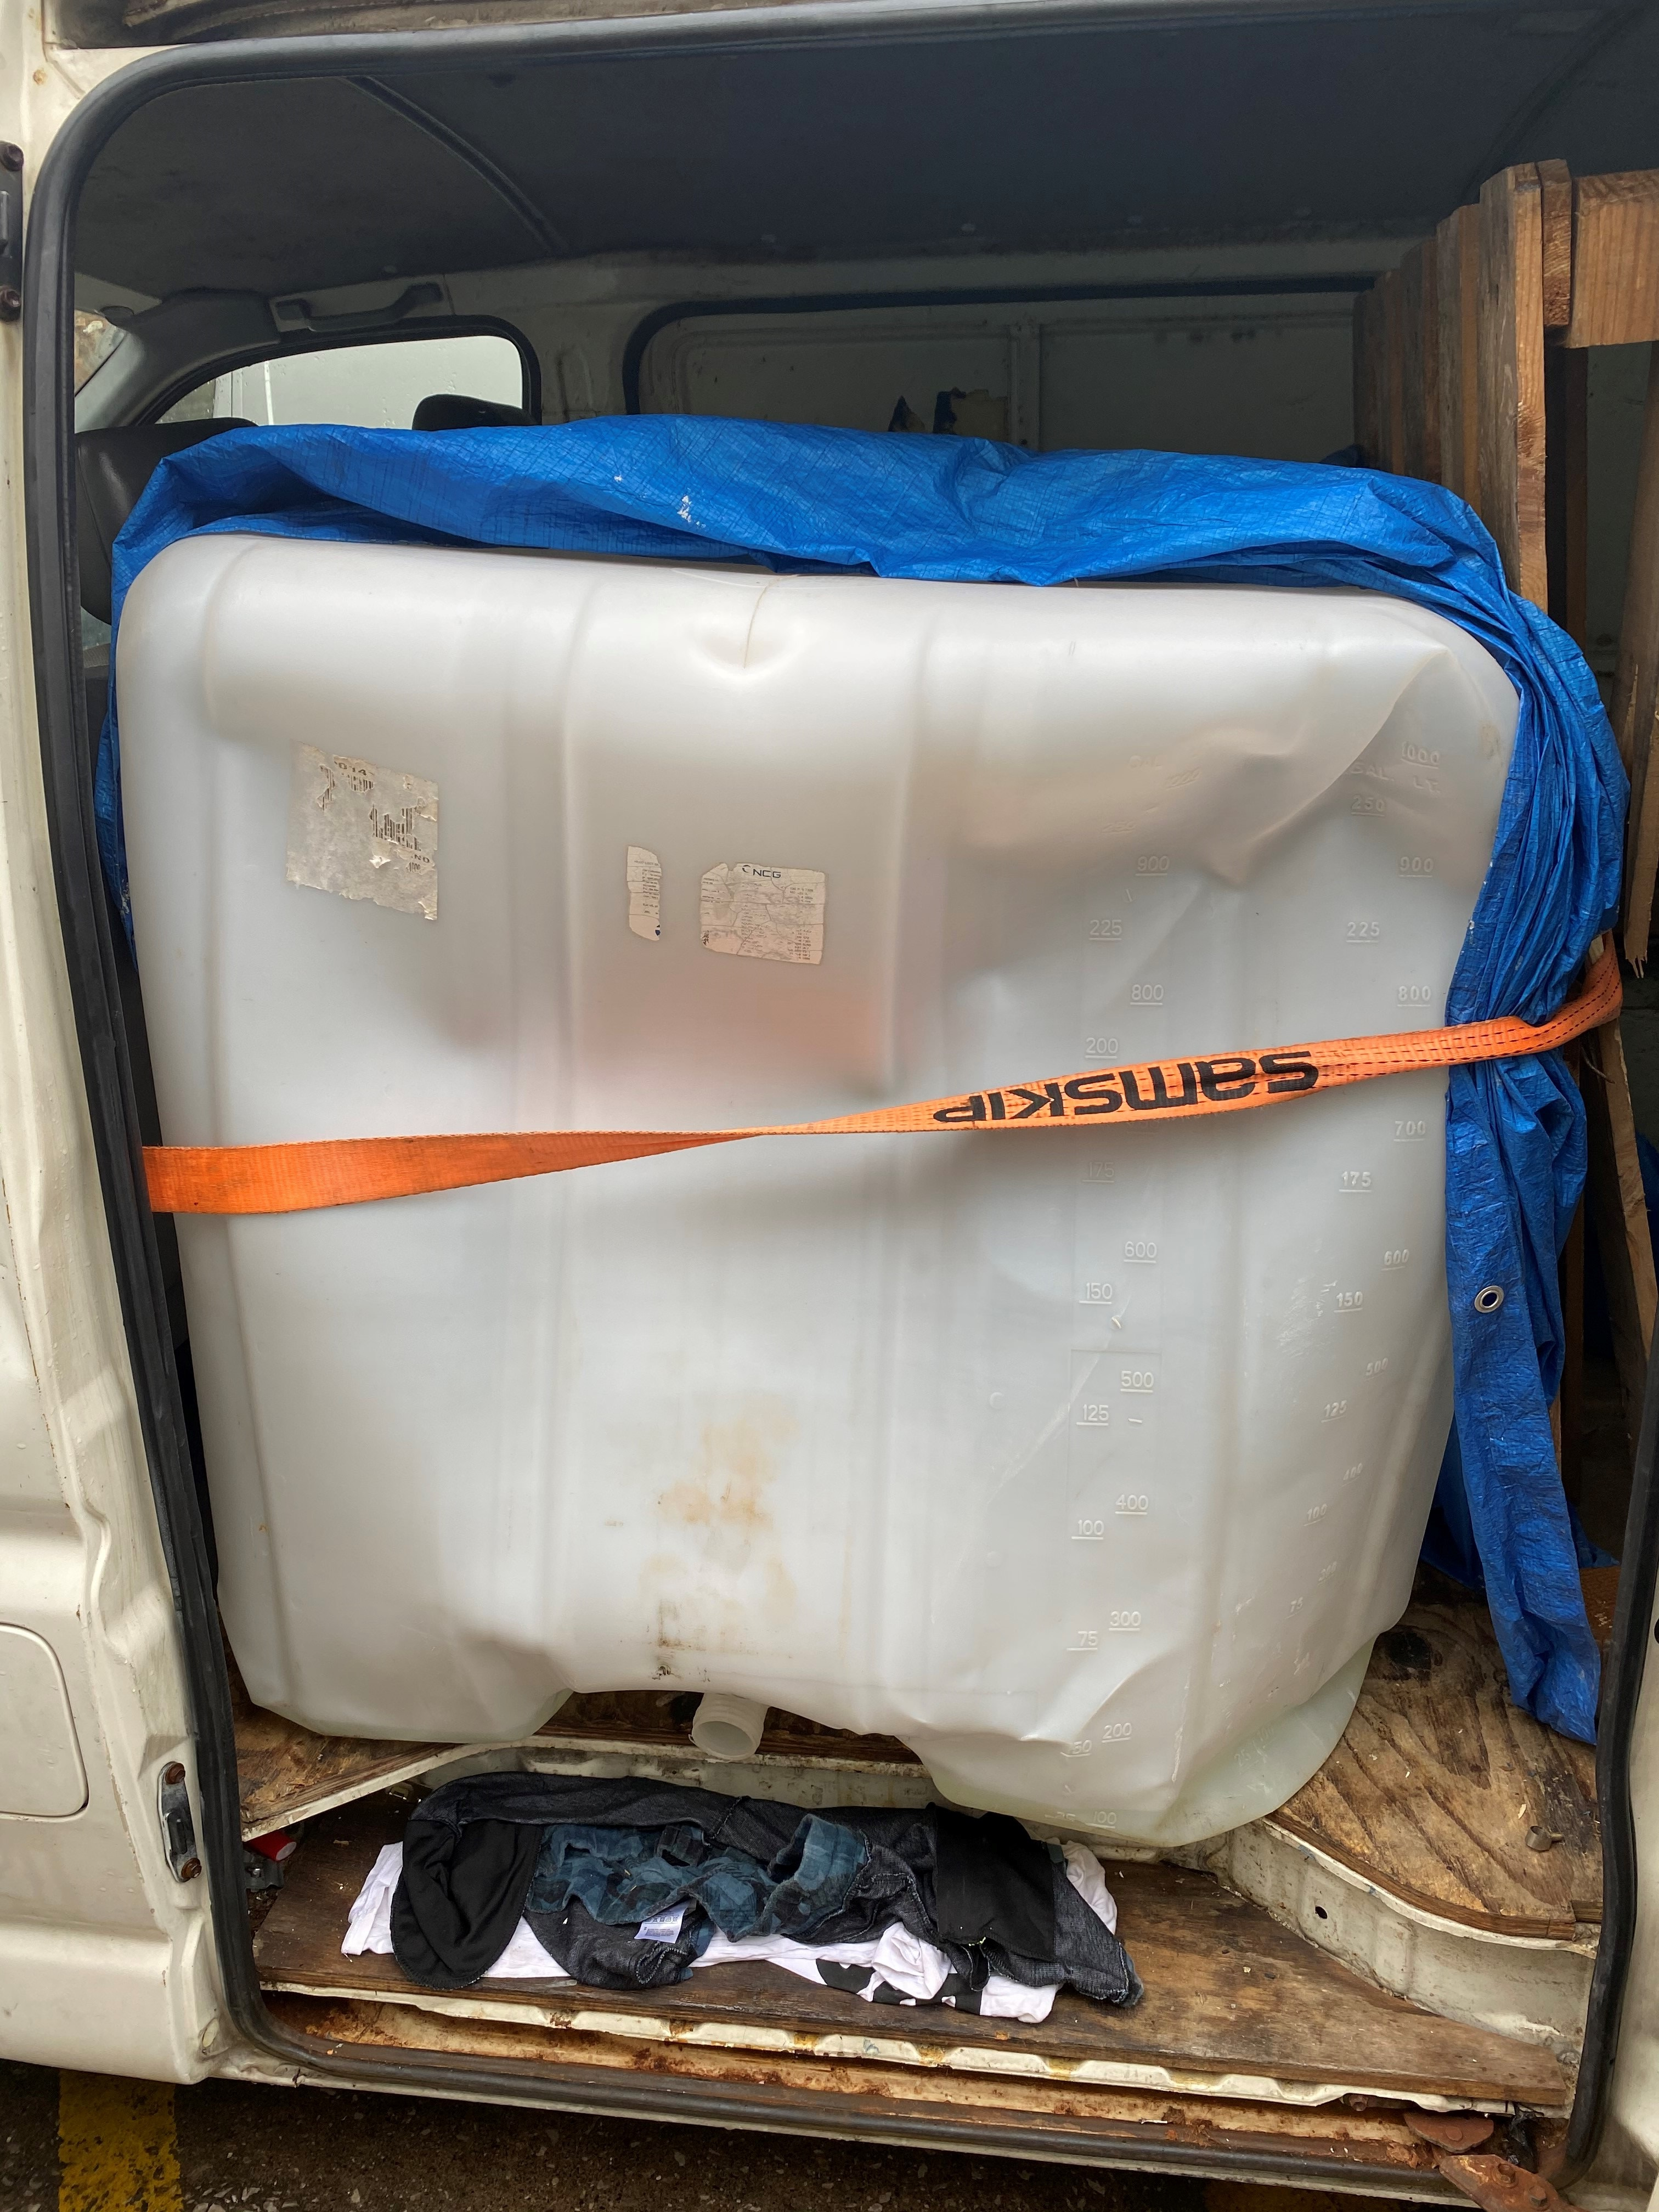 1000 litre fuel container located within the rear of the Toyota Hi-Ace van